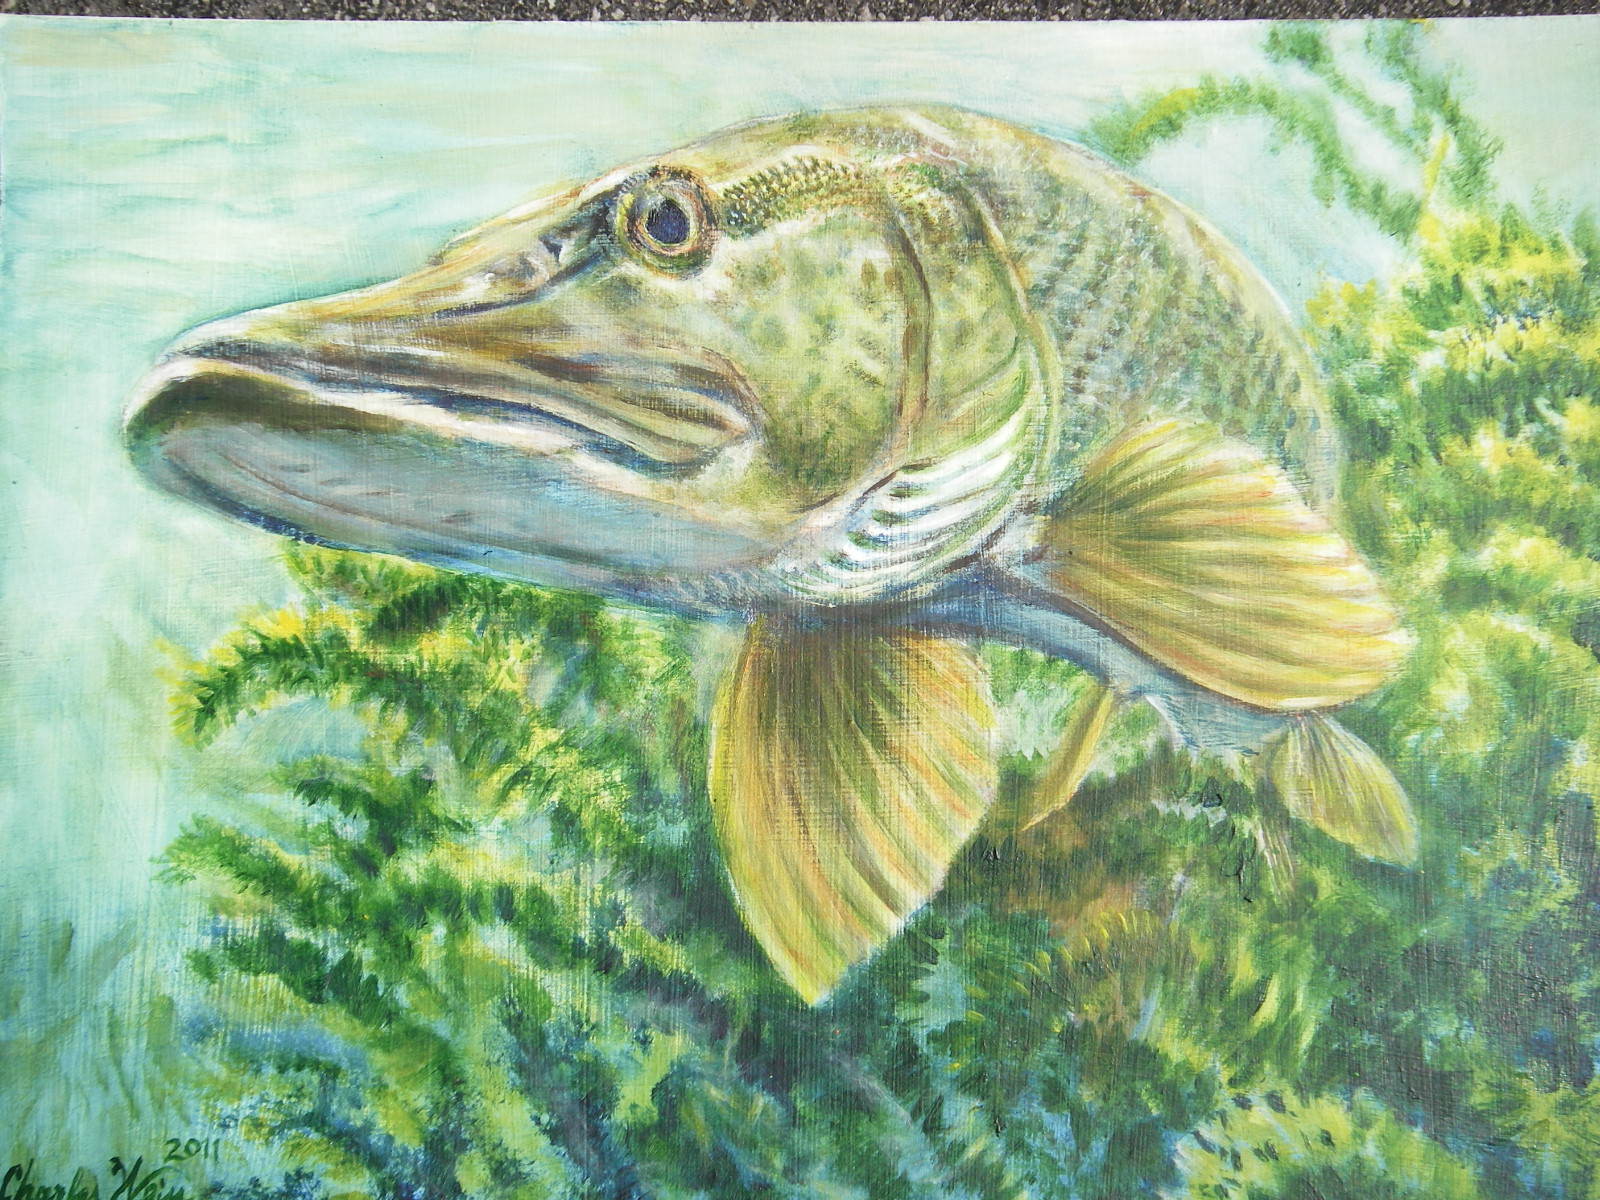 Musky Drawings http://www.pic2fly.com/Musky+Drawings.html